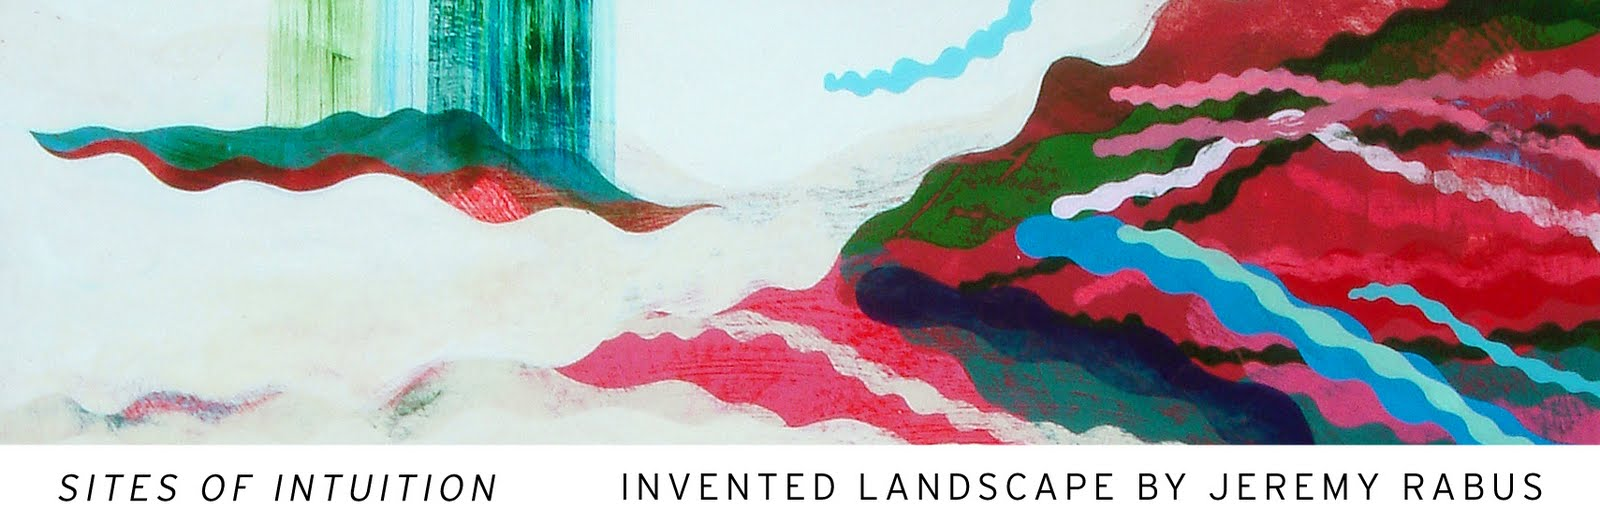 SITES OF INTUITION - INVENTED LANDSCAPE BY JEREMY RABUS